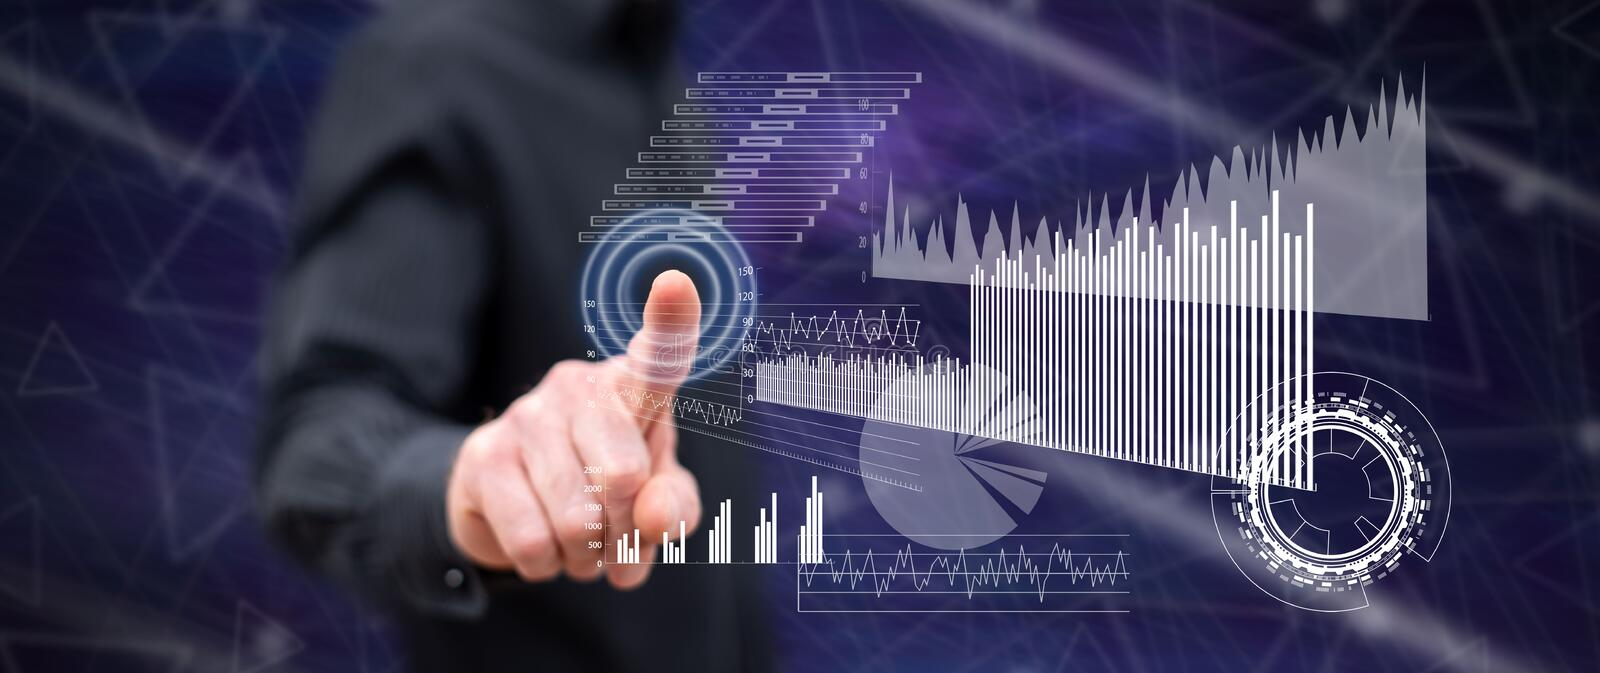 Man touching a financial analysis concept royalty free stock images